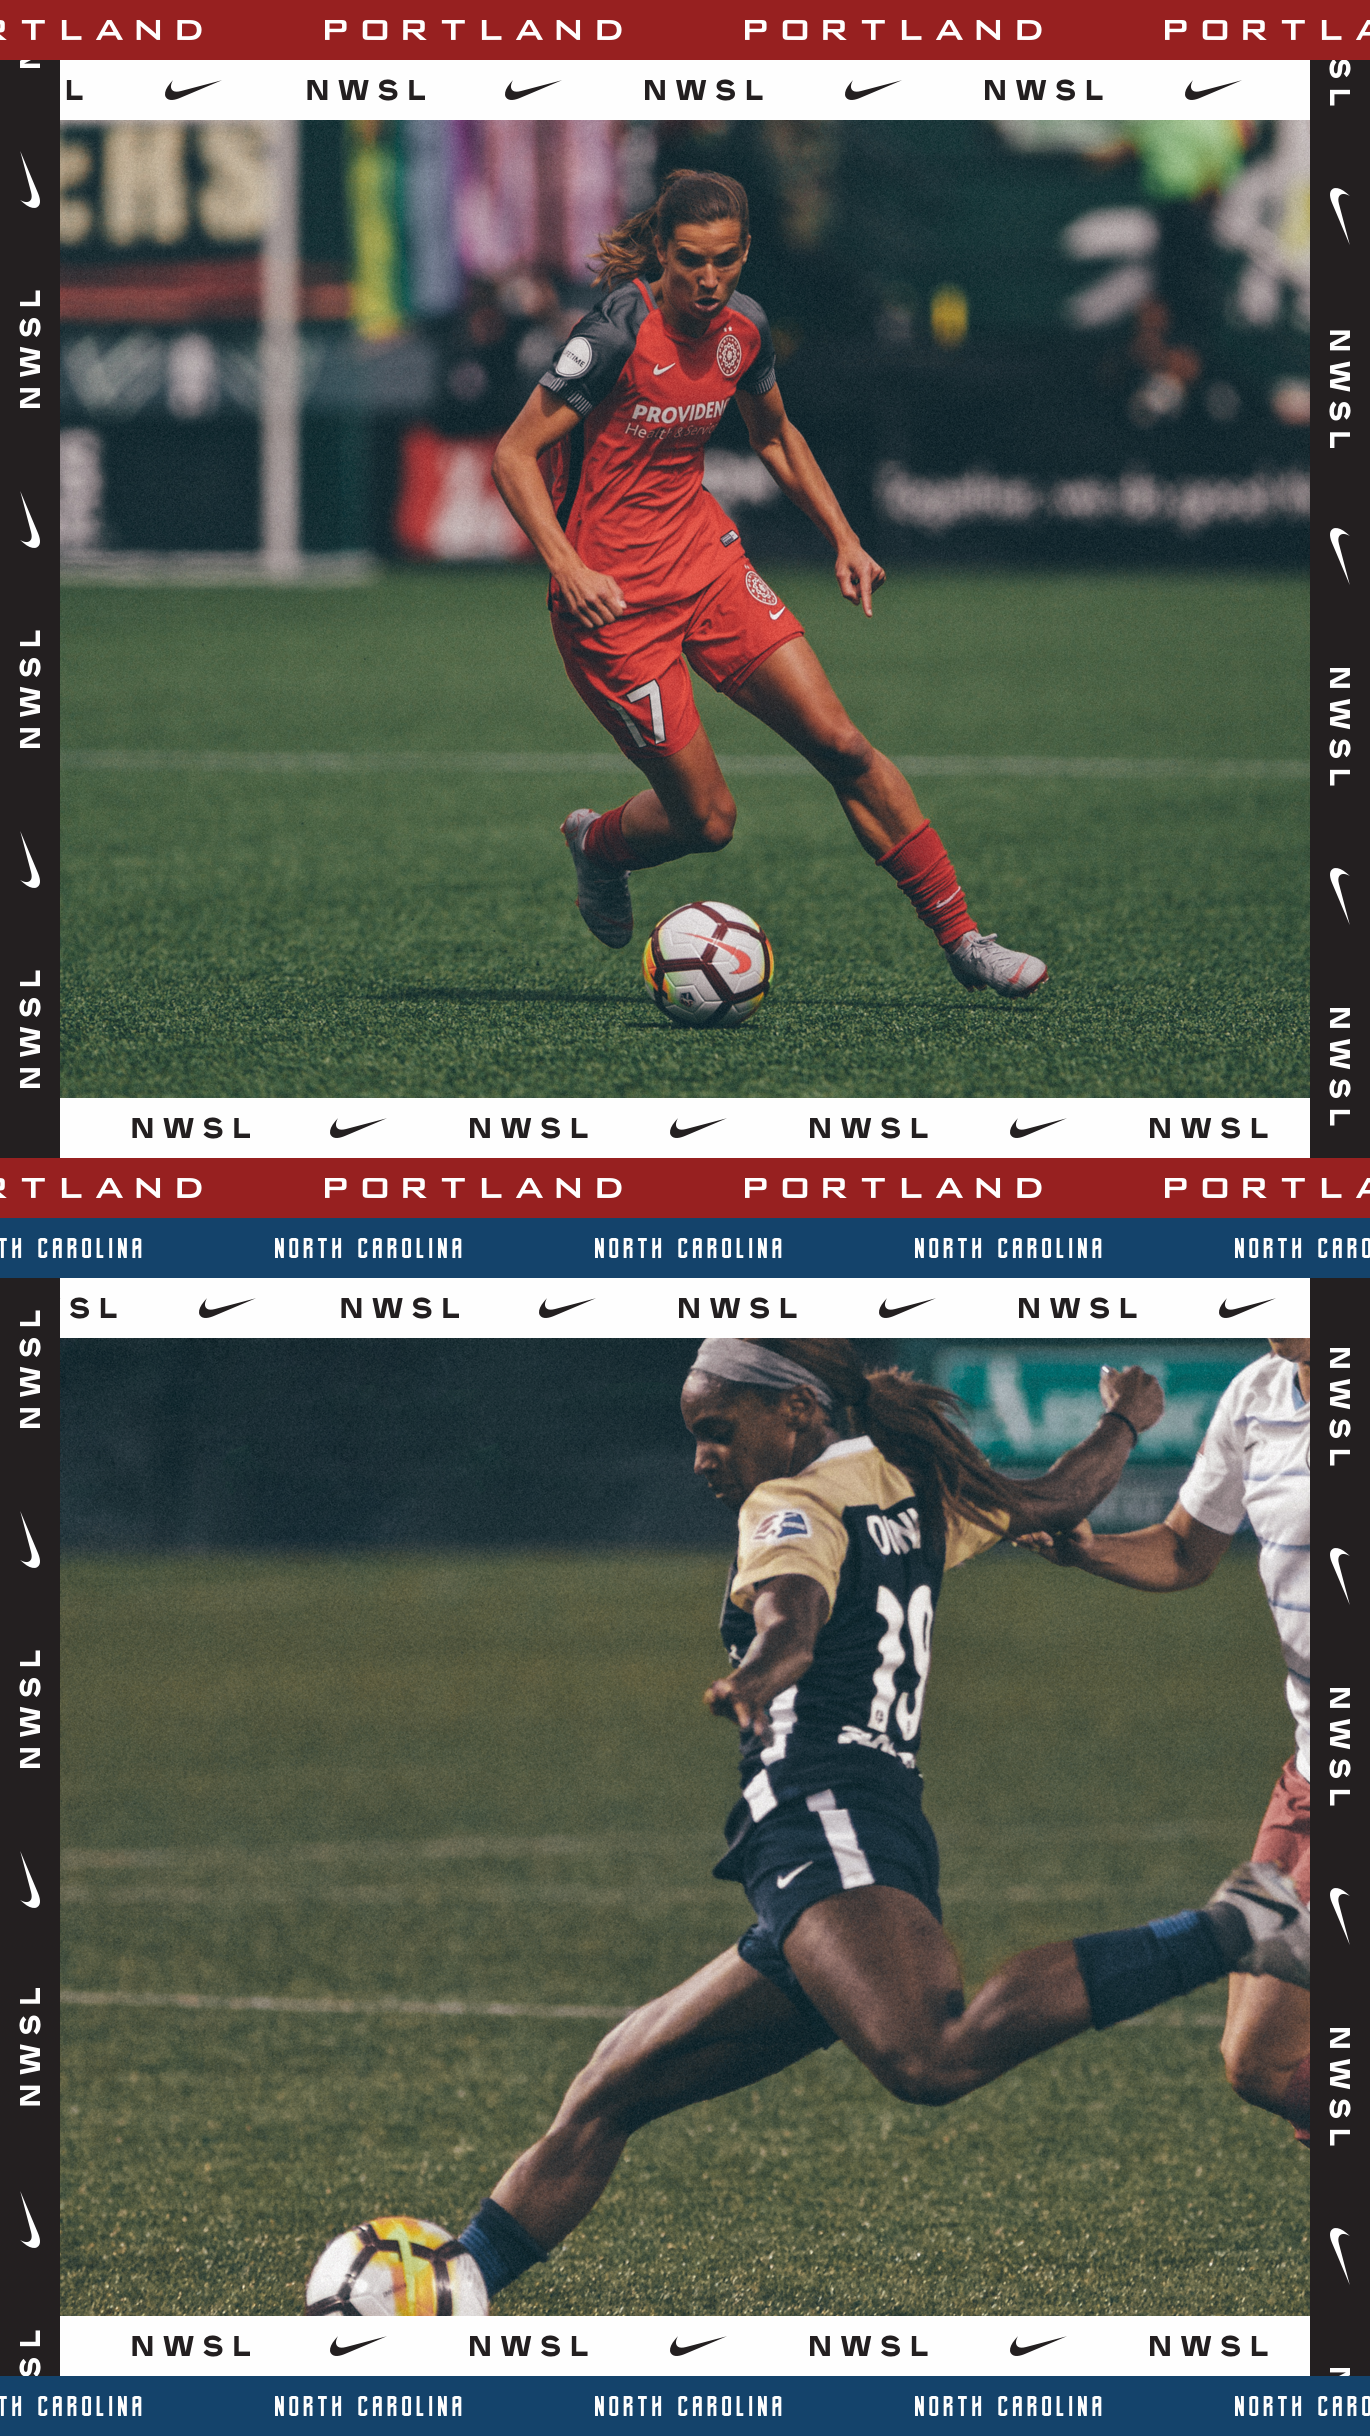 NIKE-NWSL-IG-STORY-01.png